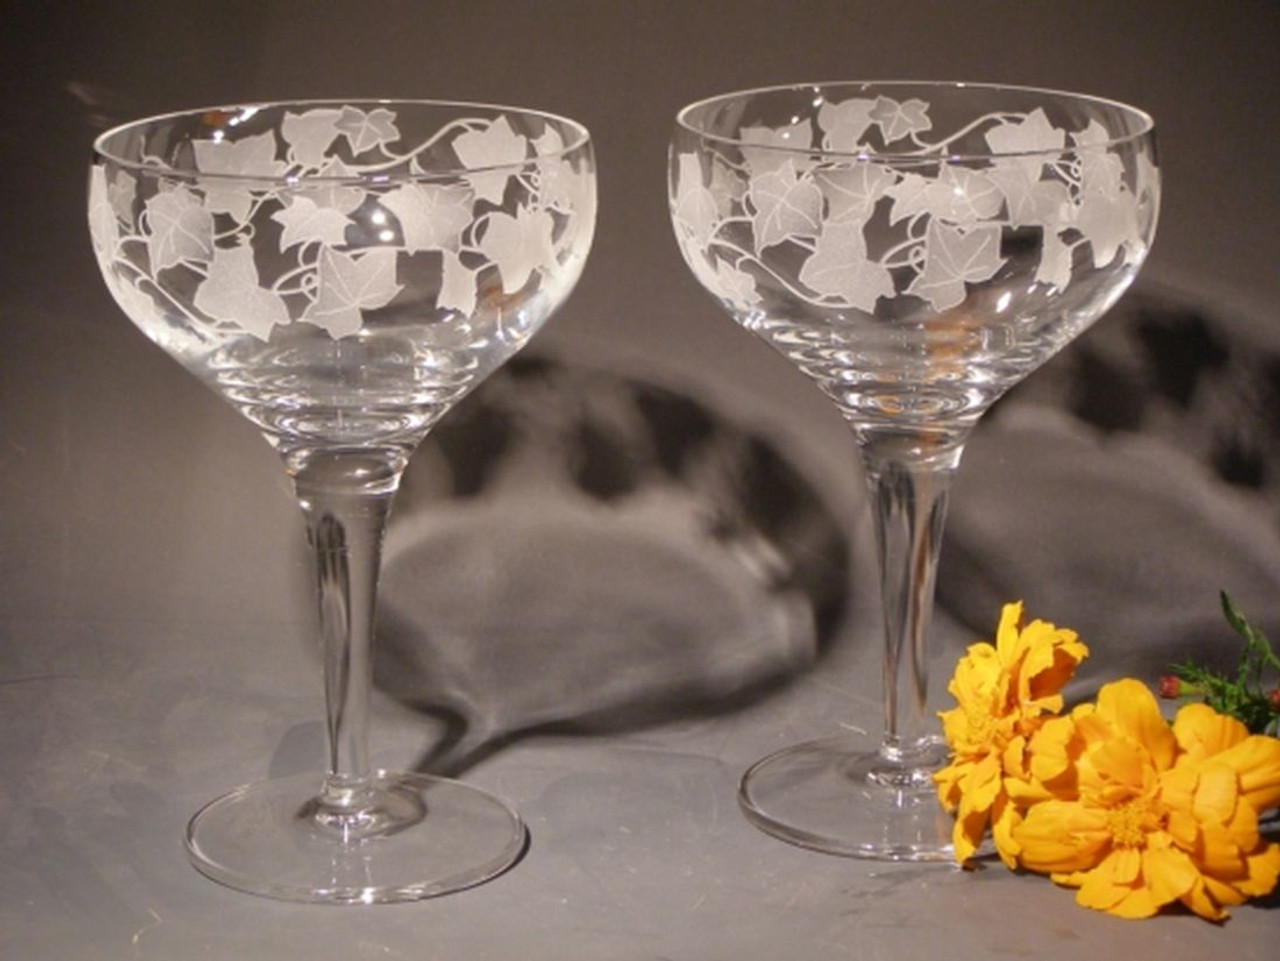 Hand Carved Crystal Coupe Glasses - Set of 2 - Personalized